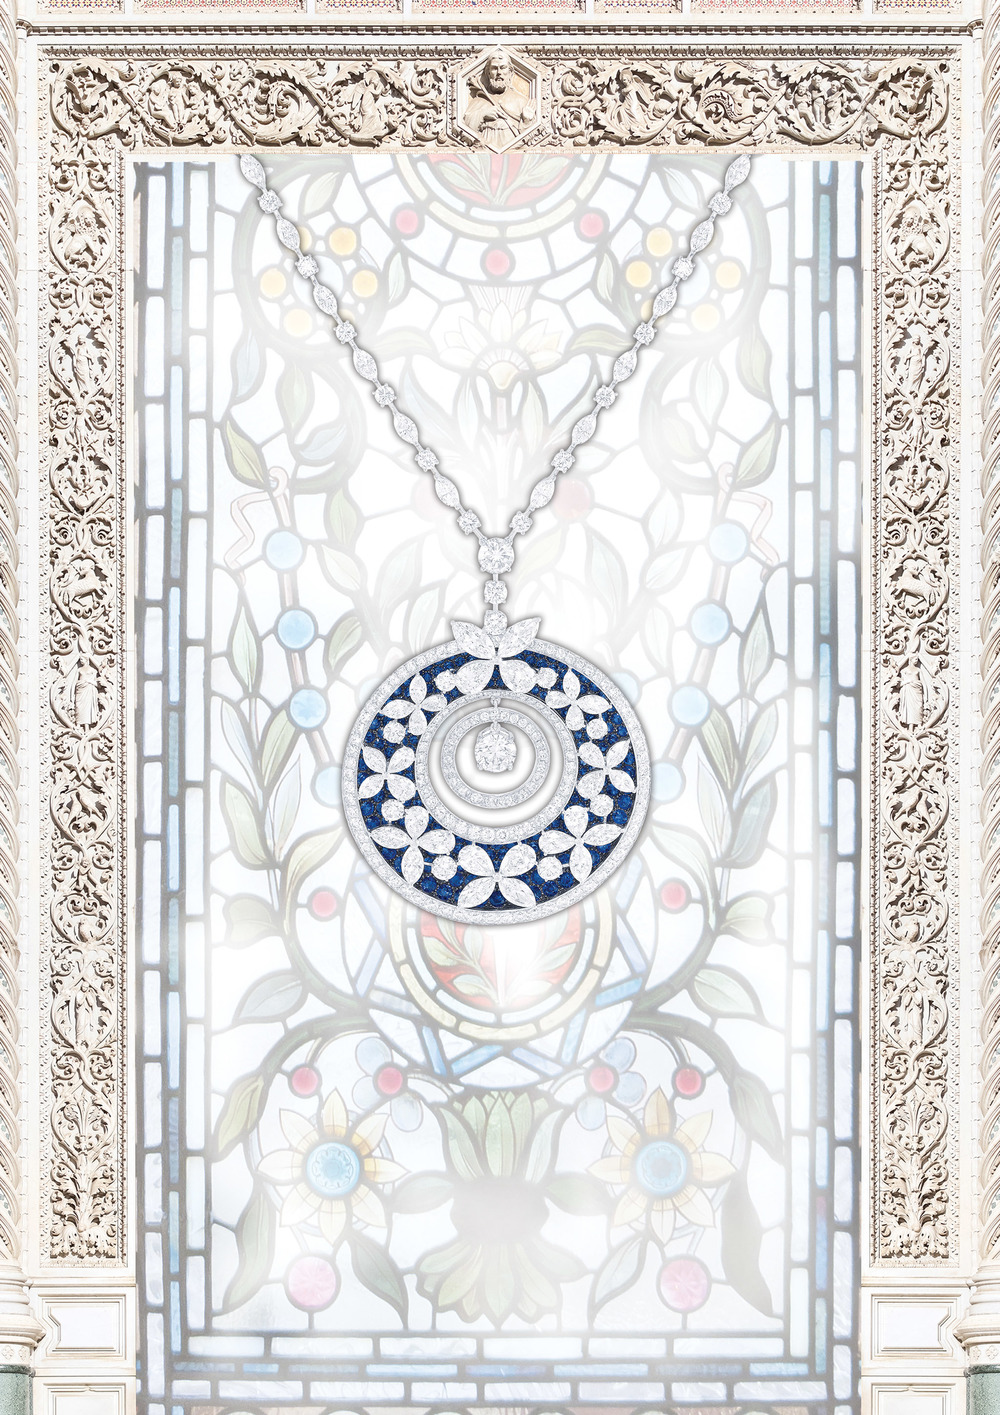 Graff Butterfly Motif Pendant  The elegant symmetry of nature's motifs plays with light captured through luminous jewels, evoking the delicate art of stained glass. Multi-shape sapphire (13.35 carats) and diamond (35.22 carats) pendant.  Price upon request, 710 Madison Avenue, 212.355.9292,  Graffdiamonds.com